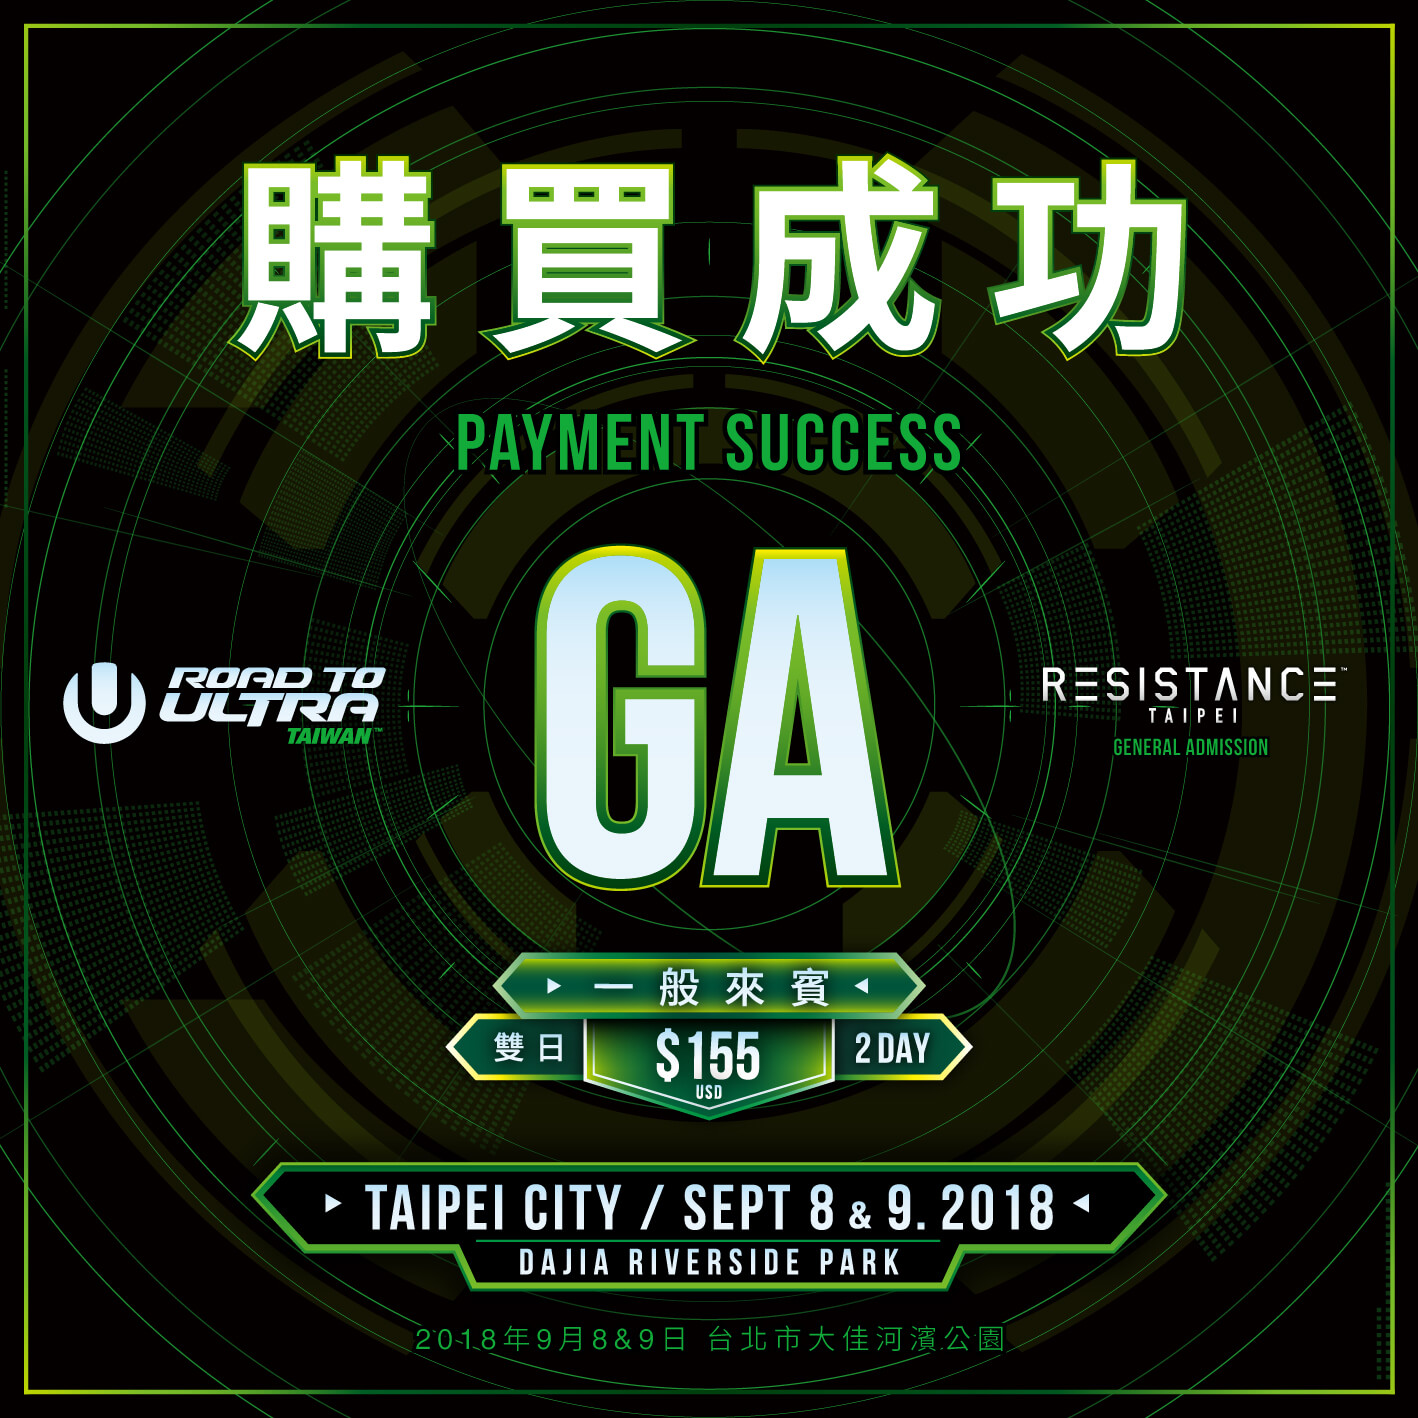 Road To Ultra Taiwan 2018 – GA 2 Day Combo